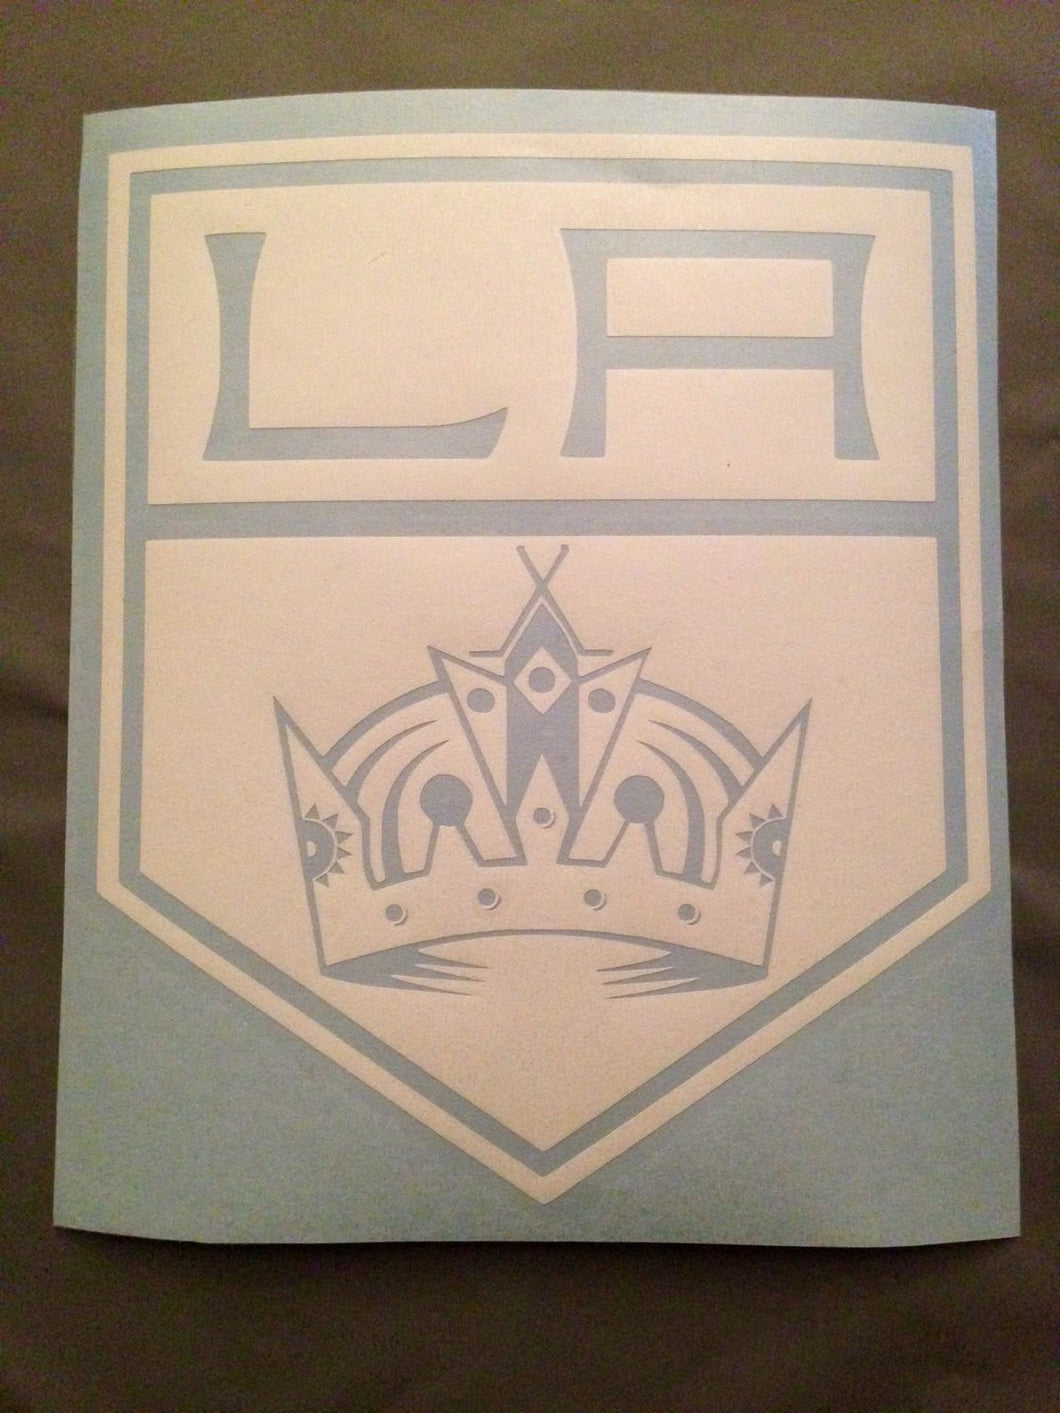 LA Kings Decal Los Angeles Kings | Hockey Crown Sticker Decal | Go Kings Go | Sports Vinyl Car Sticker